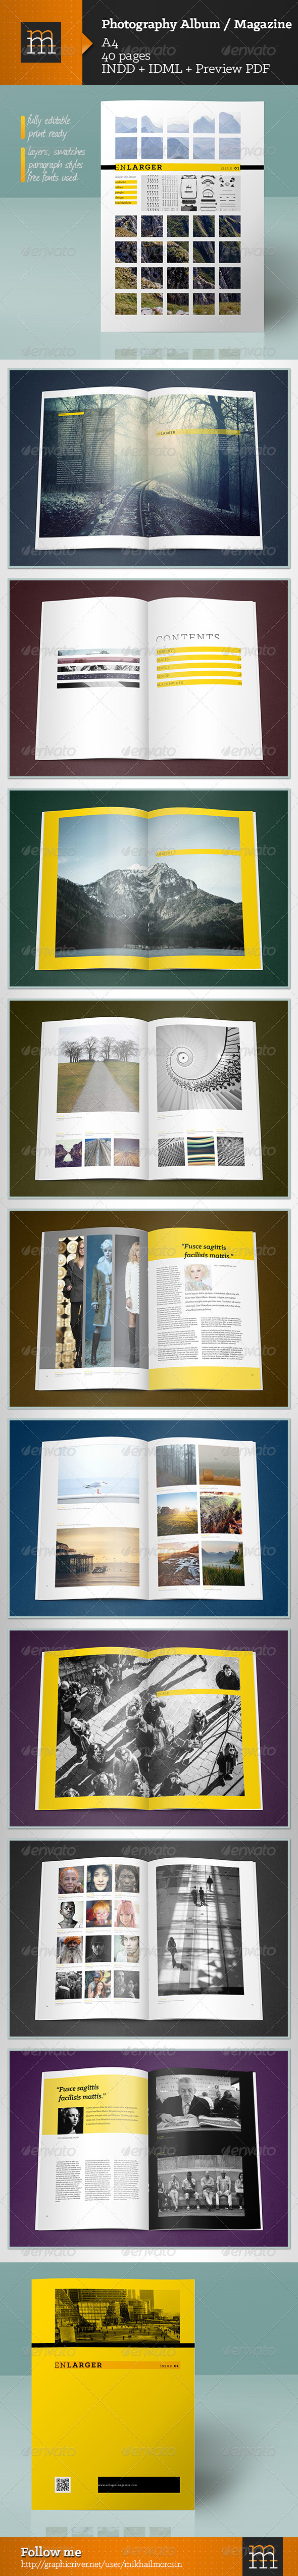 GraphicRiver Photography Album Magazine 7292107